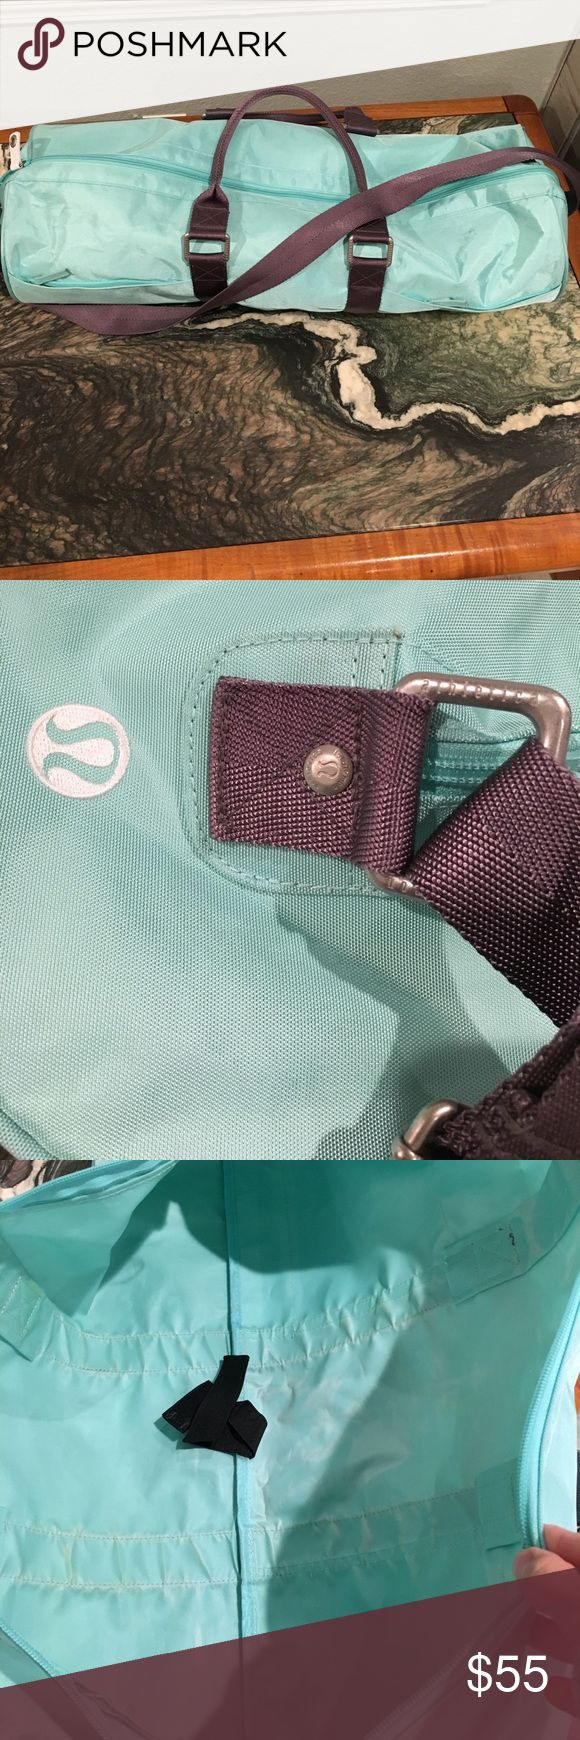 Lululemon Large yoga mat bag This is a teal old school yoga mat bag. I love it because it is large enough to hold the thicker manduka yoga mats with a little room to spare. It is free of rips, holes and stains and has a waterproof lining with vent holes as shown. Great condition! lululemon athletica Bags